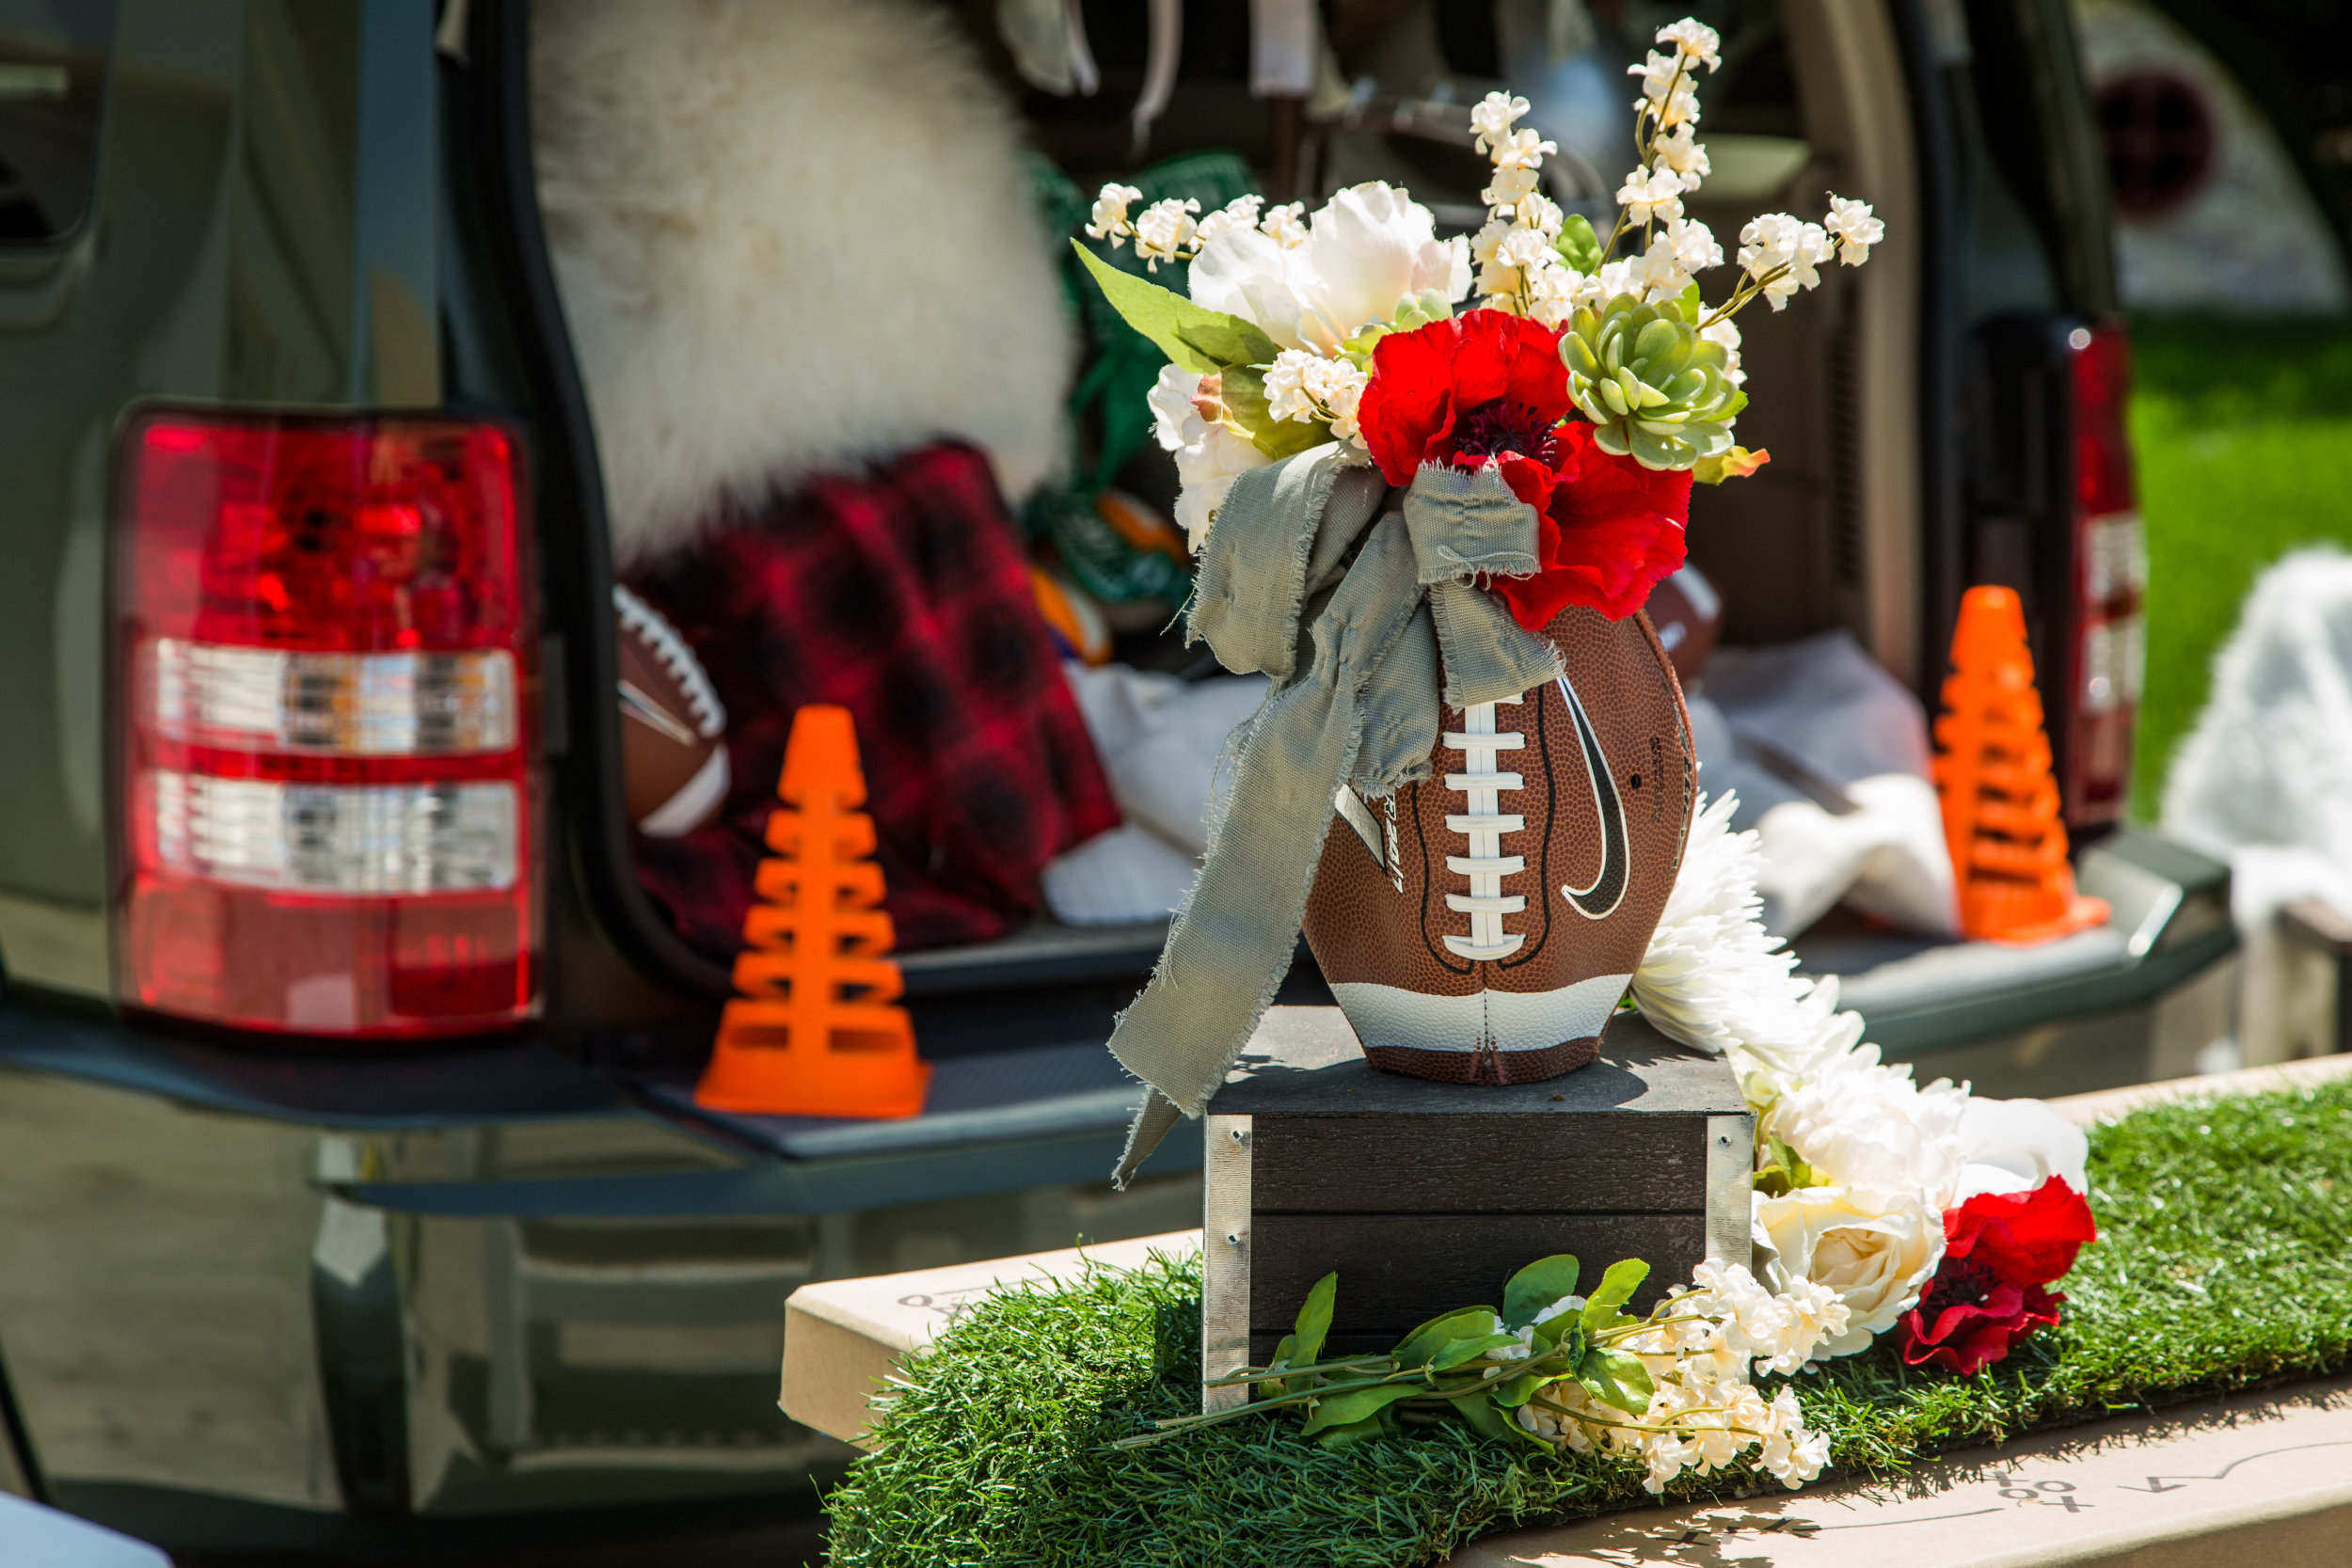 How to diy shabby chic tailgate home family hallmark channel arubaitofo Gallery